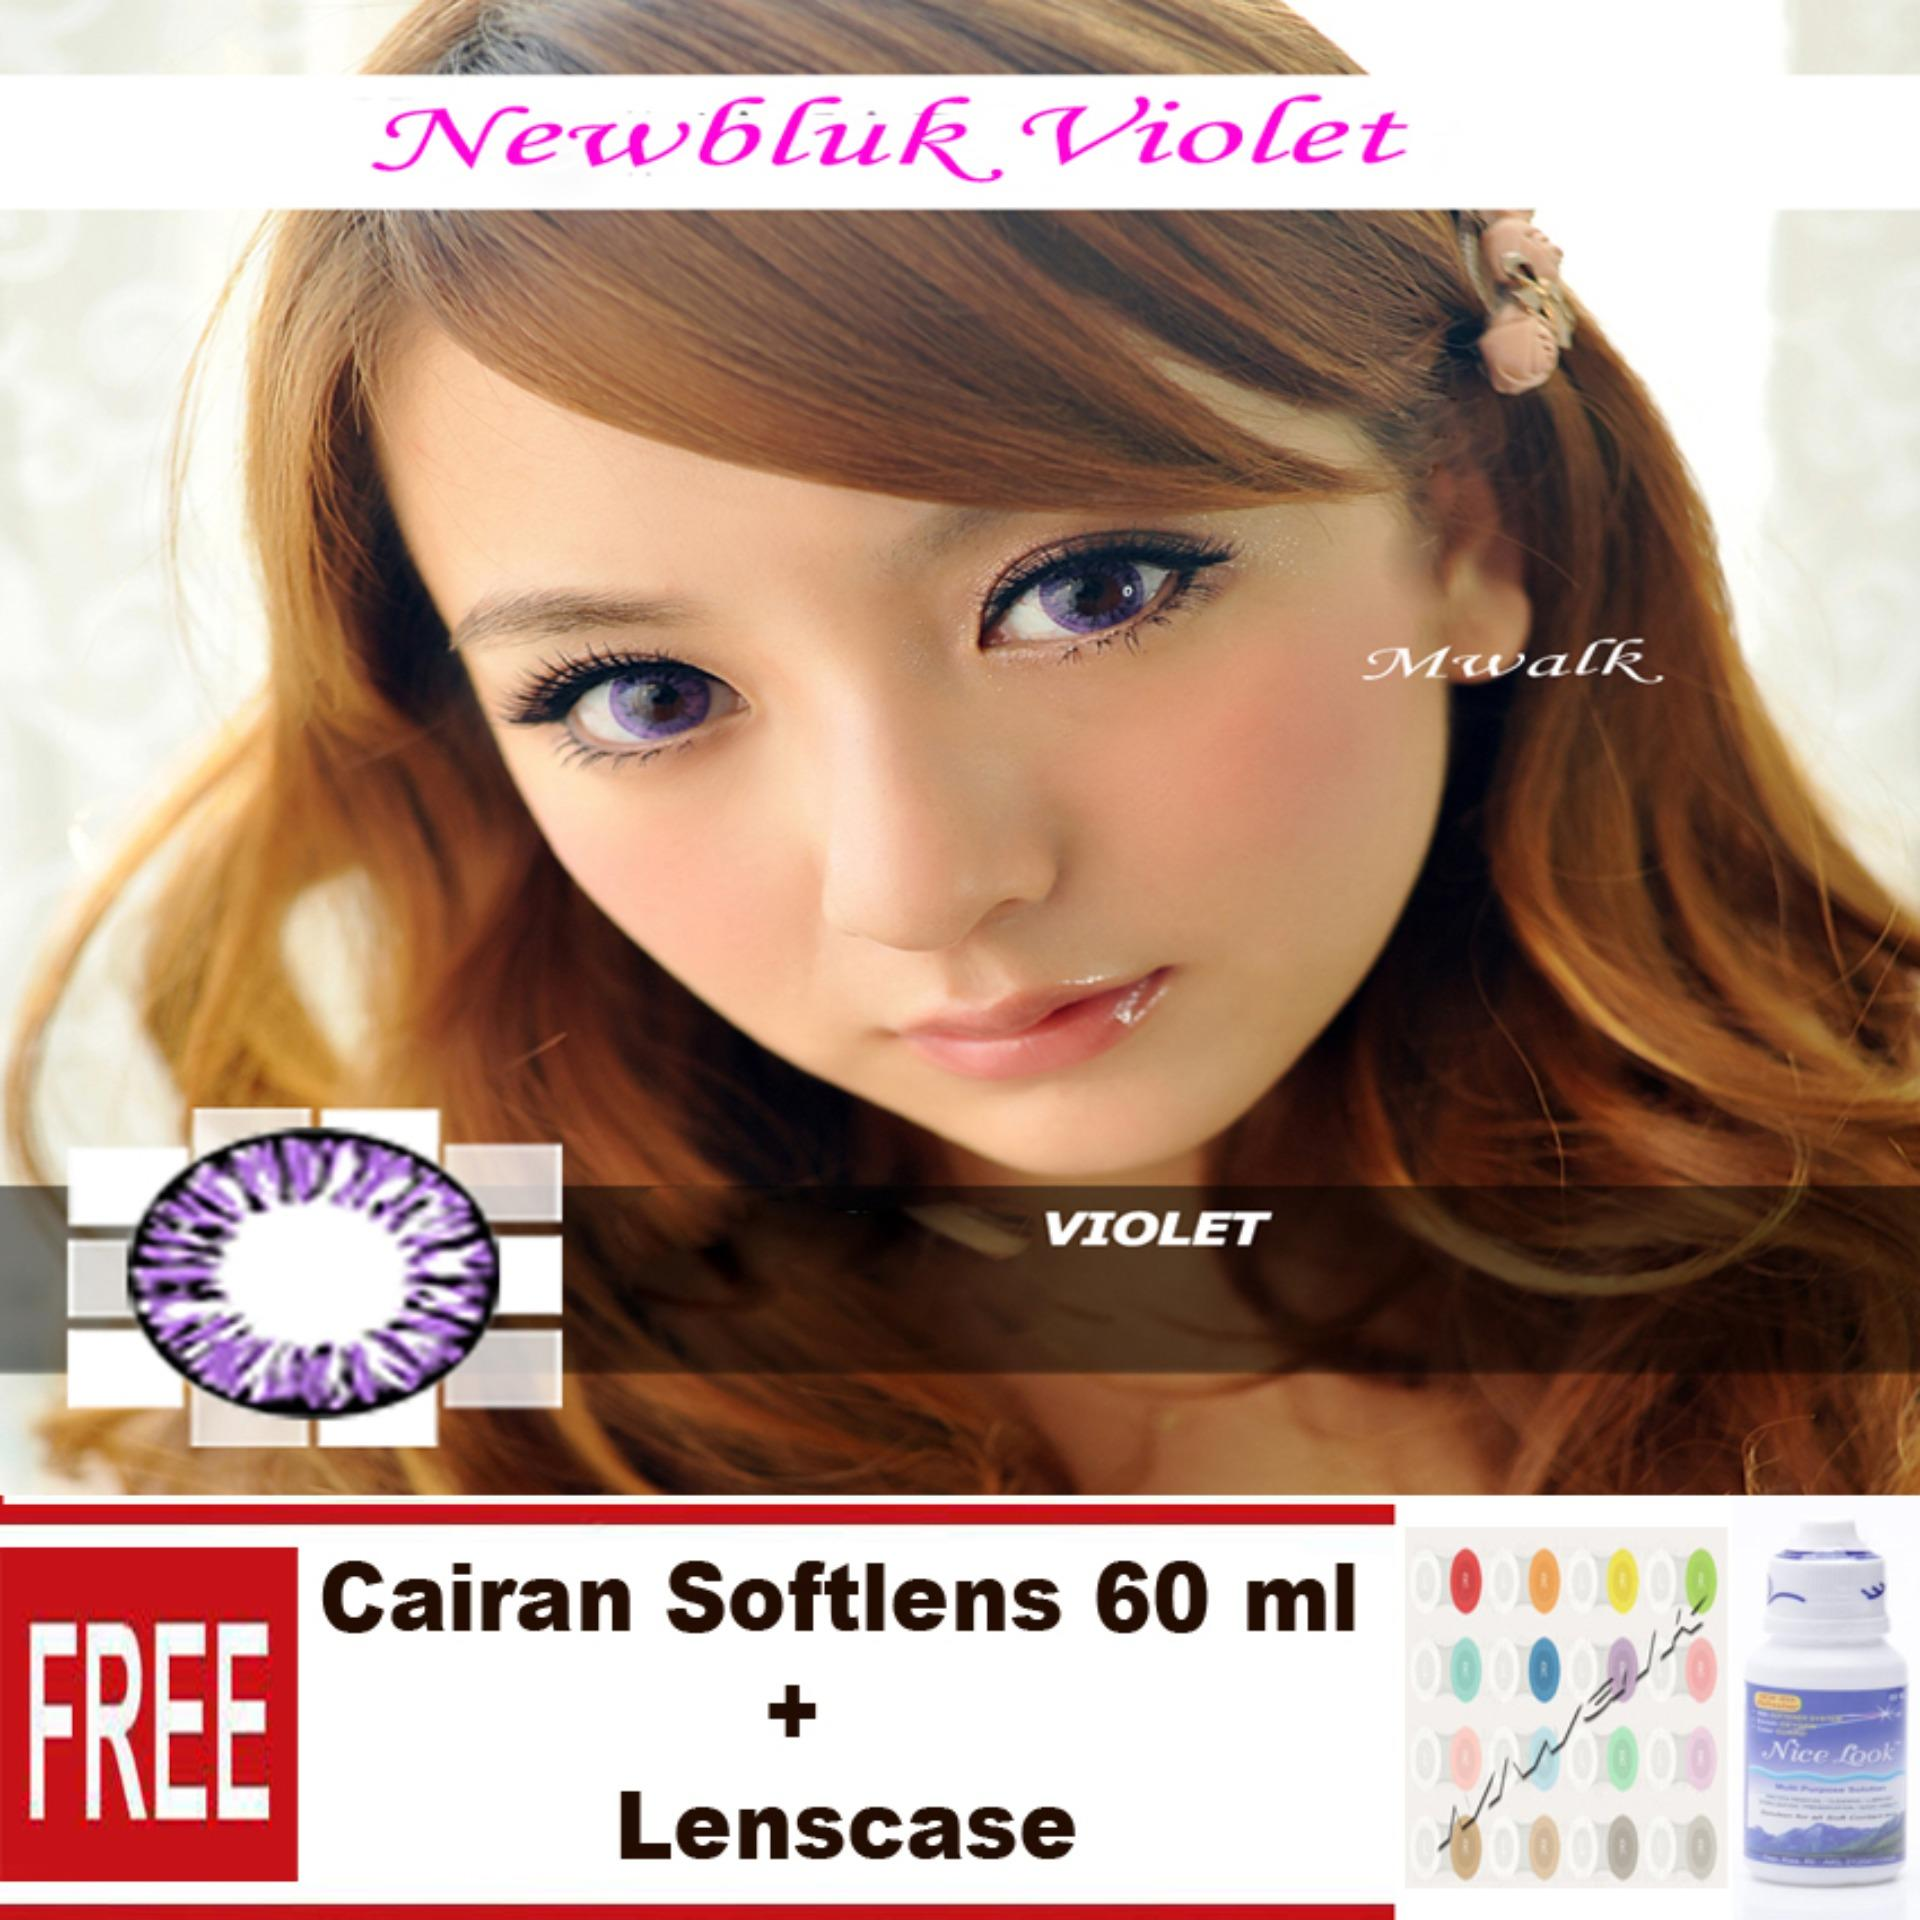 The Cheapest Price Softlens Newbluk Free Cairan Soflens 60 Ml Air Nice Look Lenscase